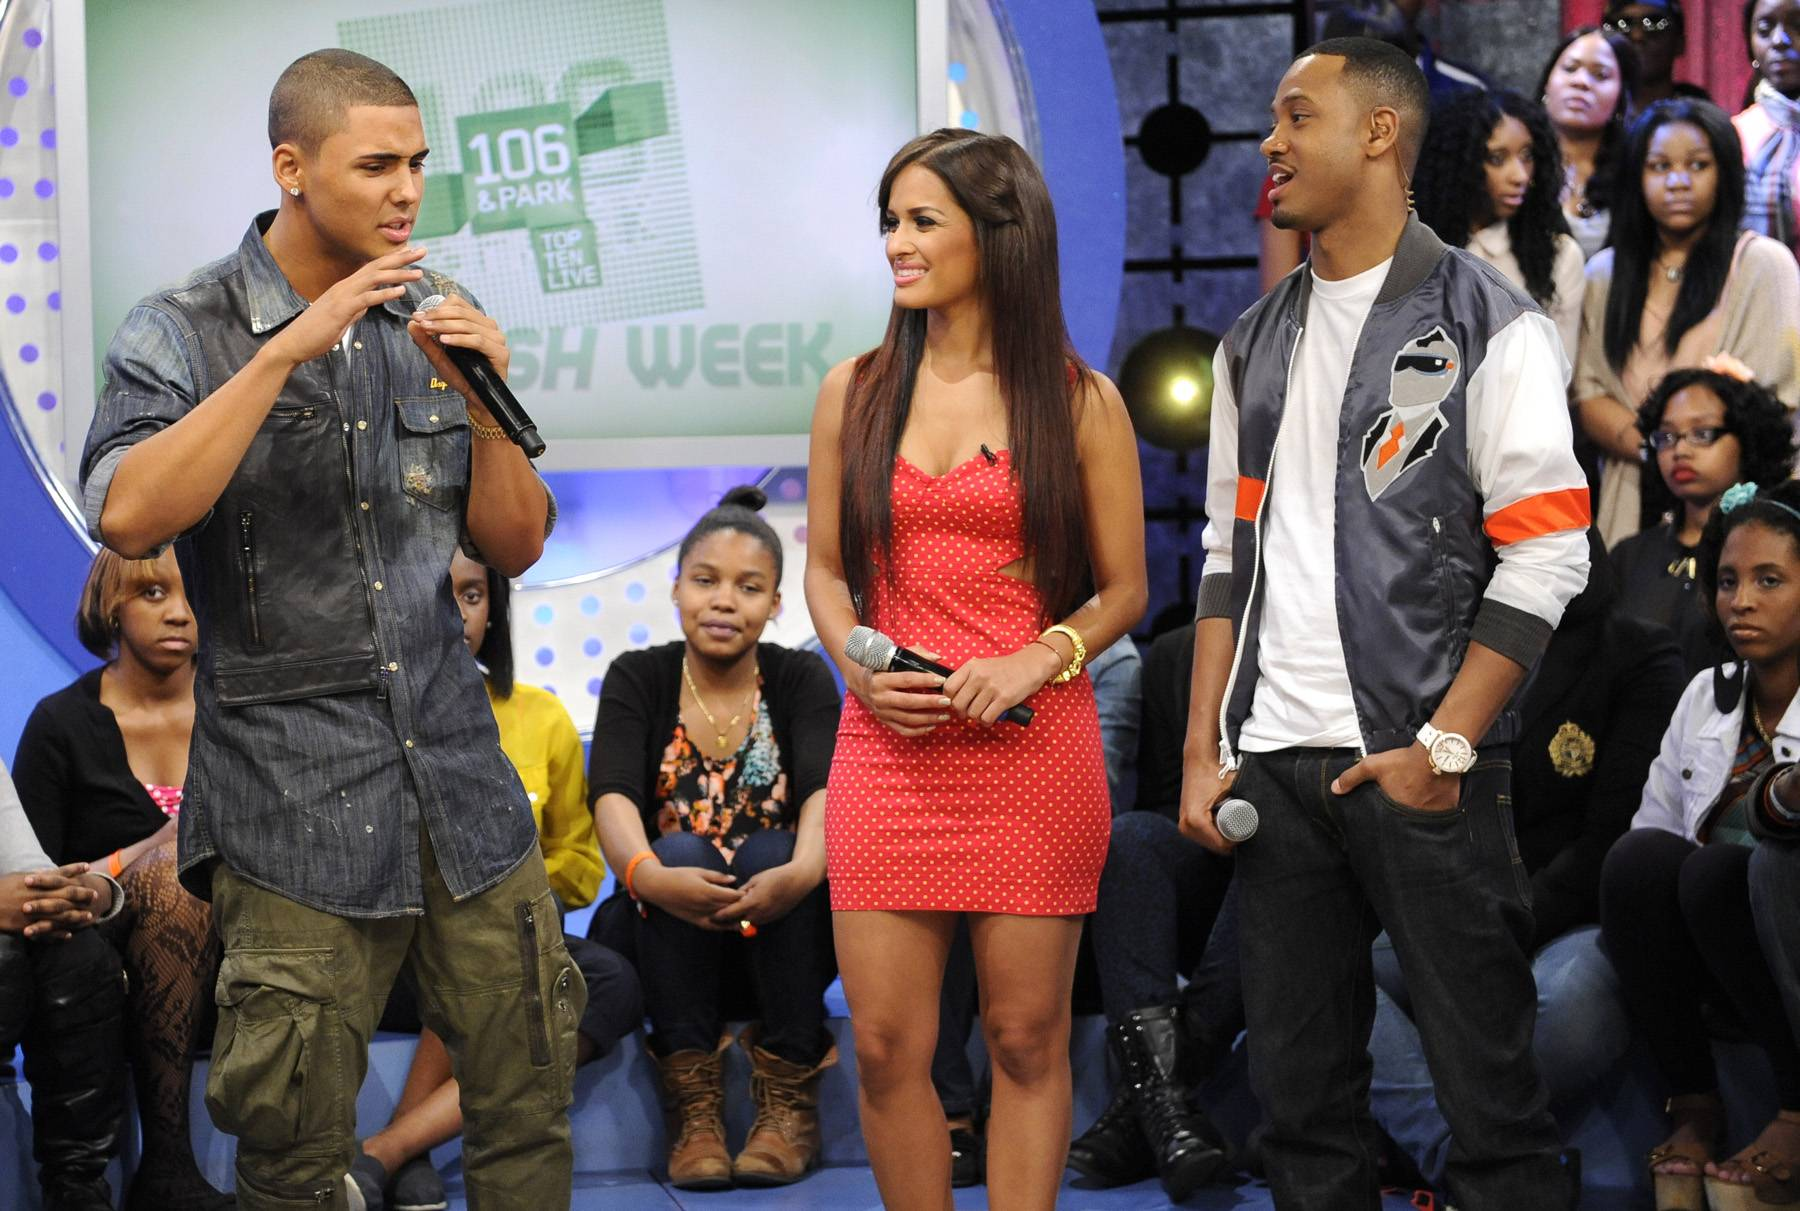 Ready For The World - Quincy with Terrence J and Rocsi Diaz at 106 & Park, May 3, 2012. (Photo: John Ricard / BET)